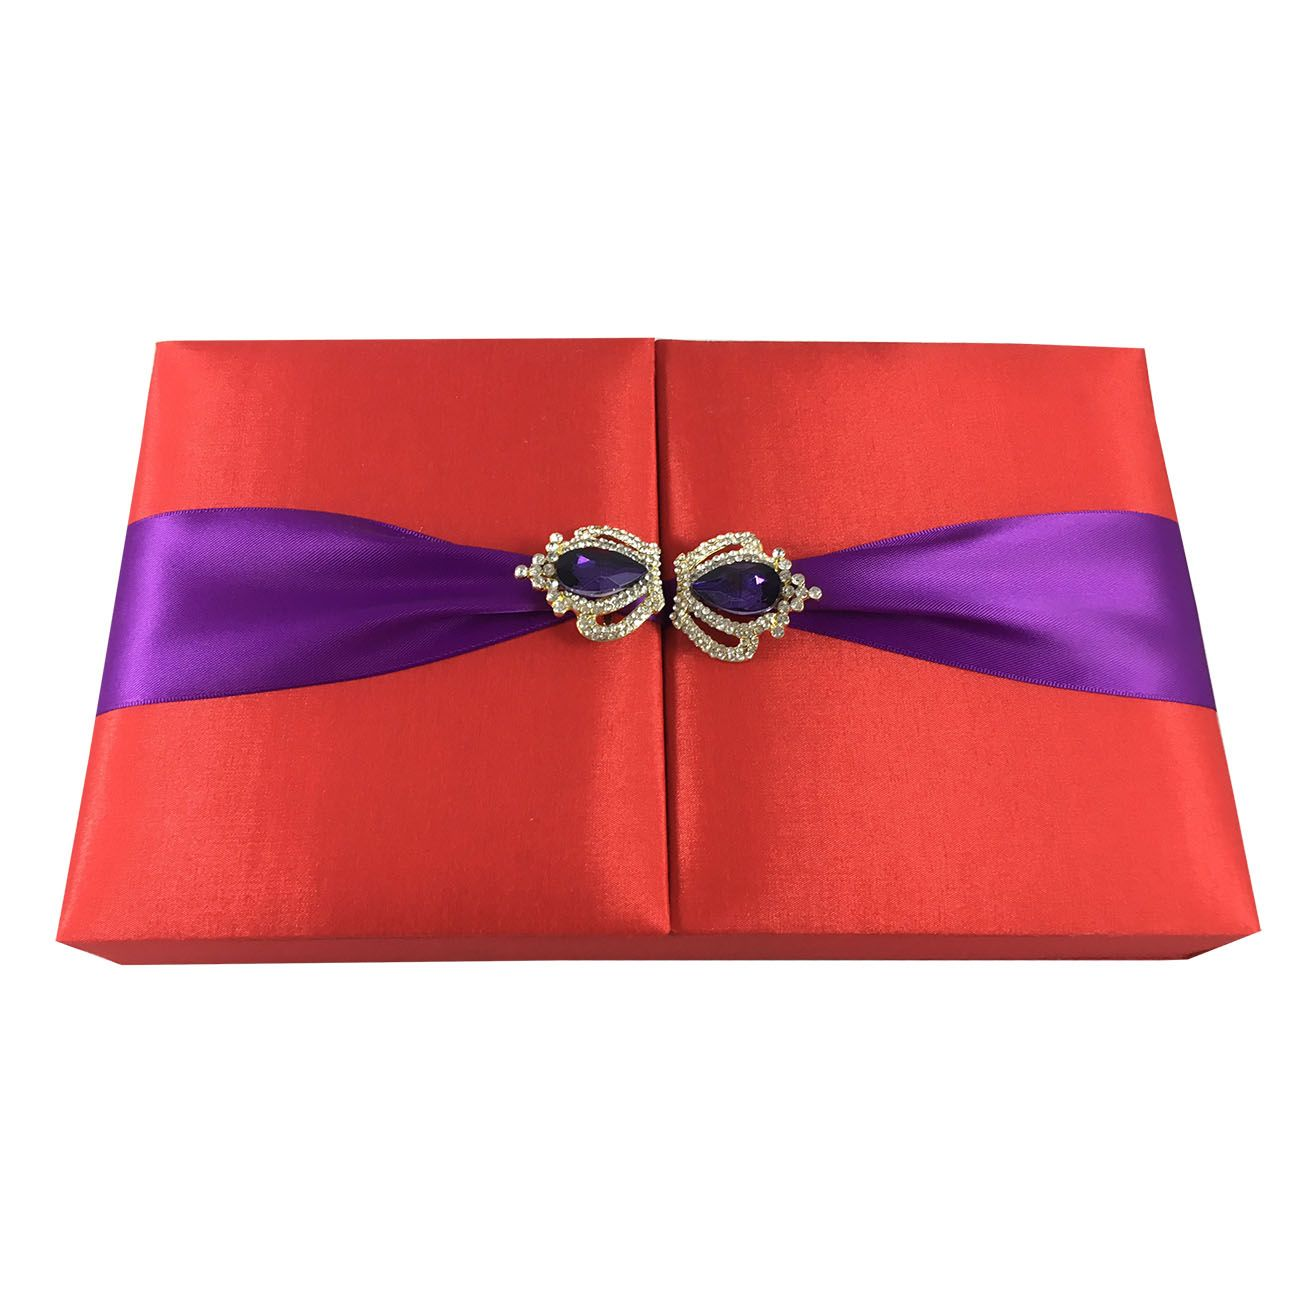 Luxury Chocolate Silk Invitation Box In Red | Luxury Wedding ...